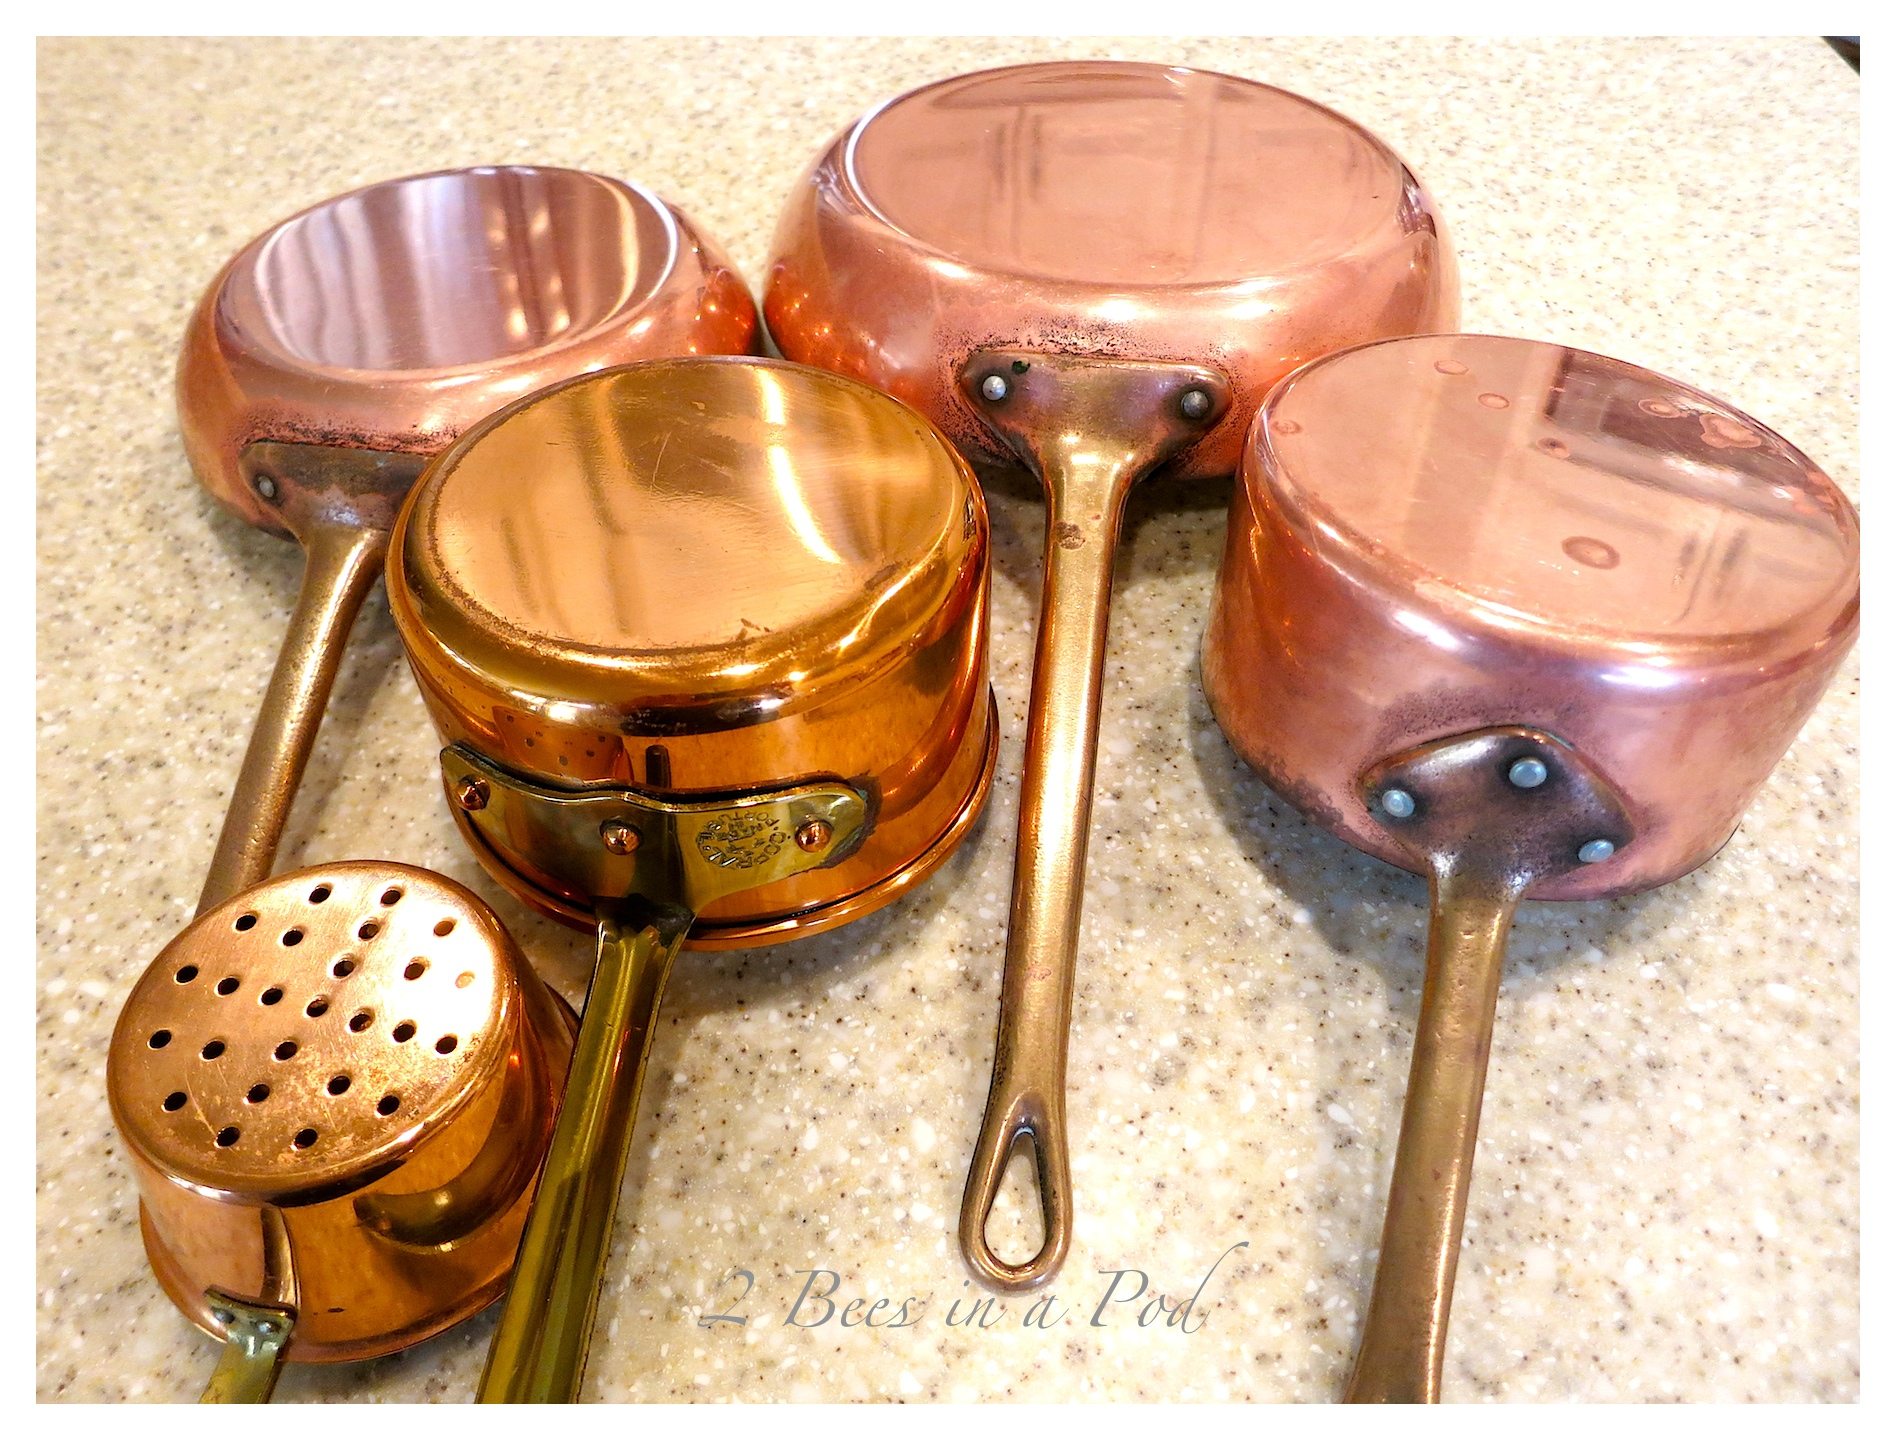 IA safe and organic way to clean copper pots and pans. Use lemon and kosher salt to wipe away grime. Shiny and polished!